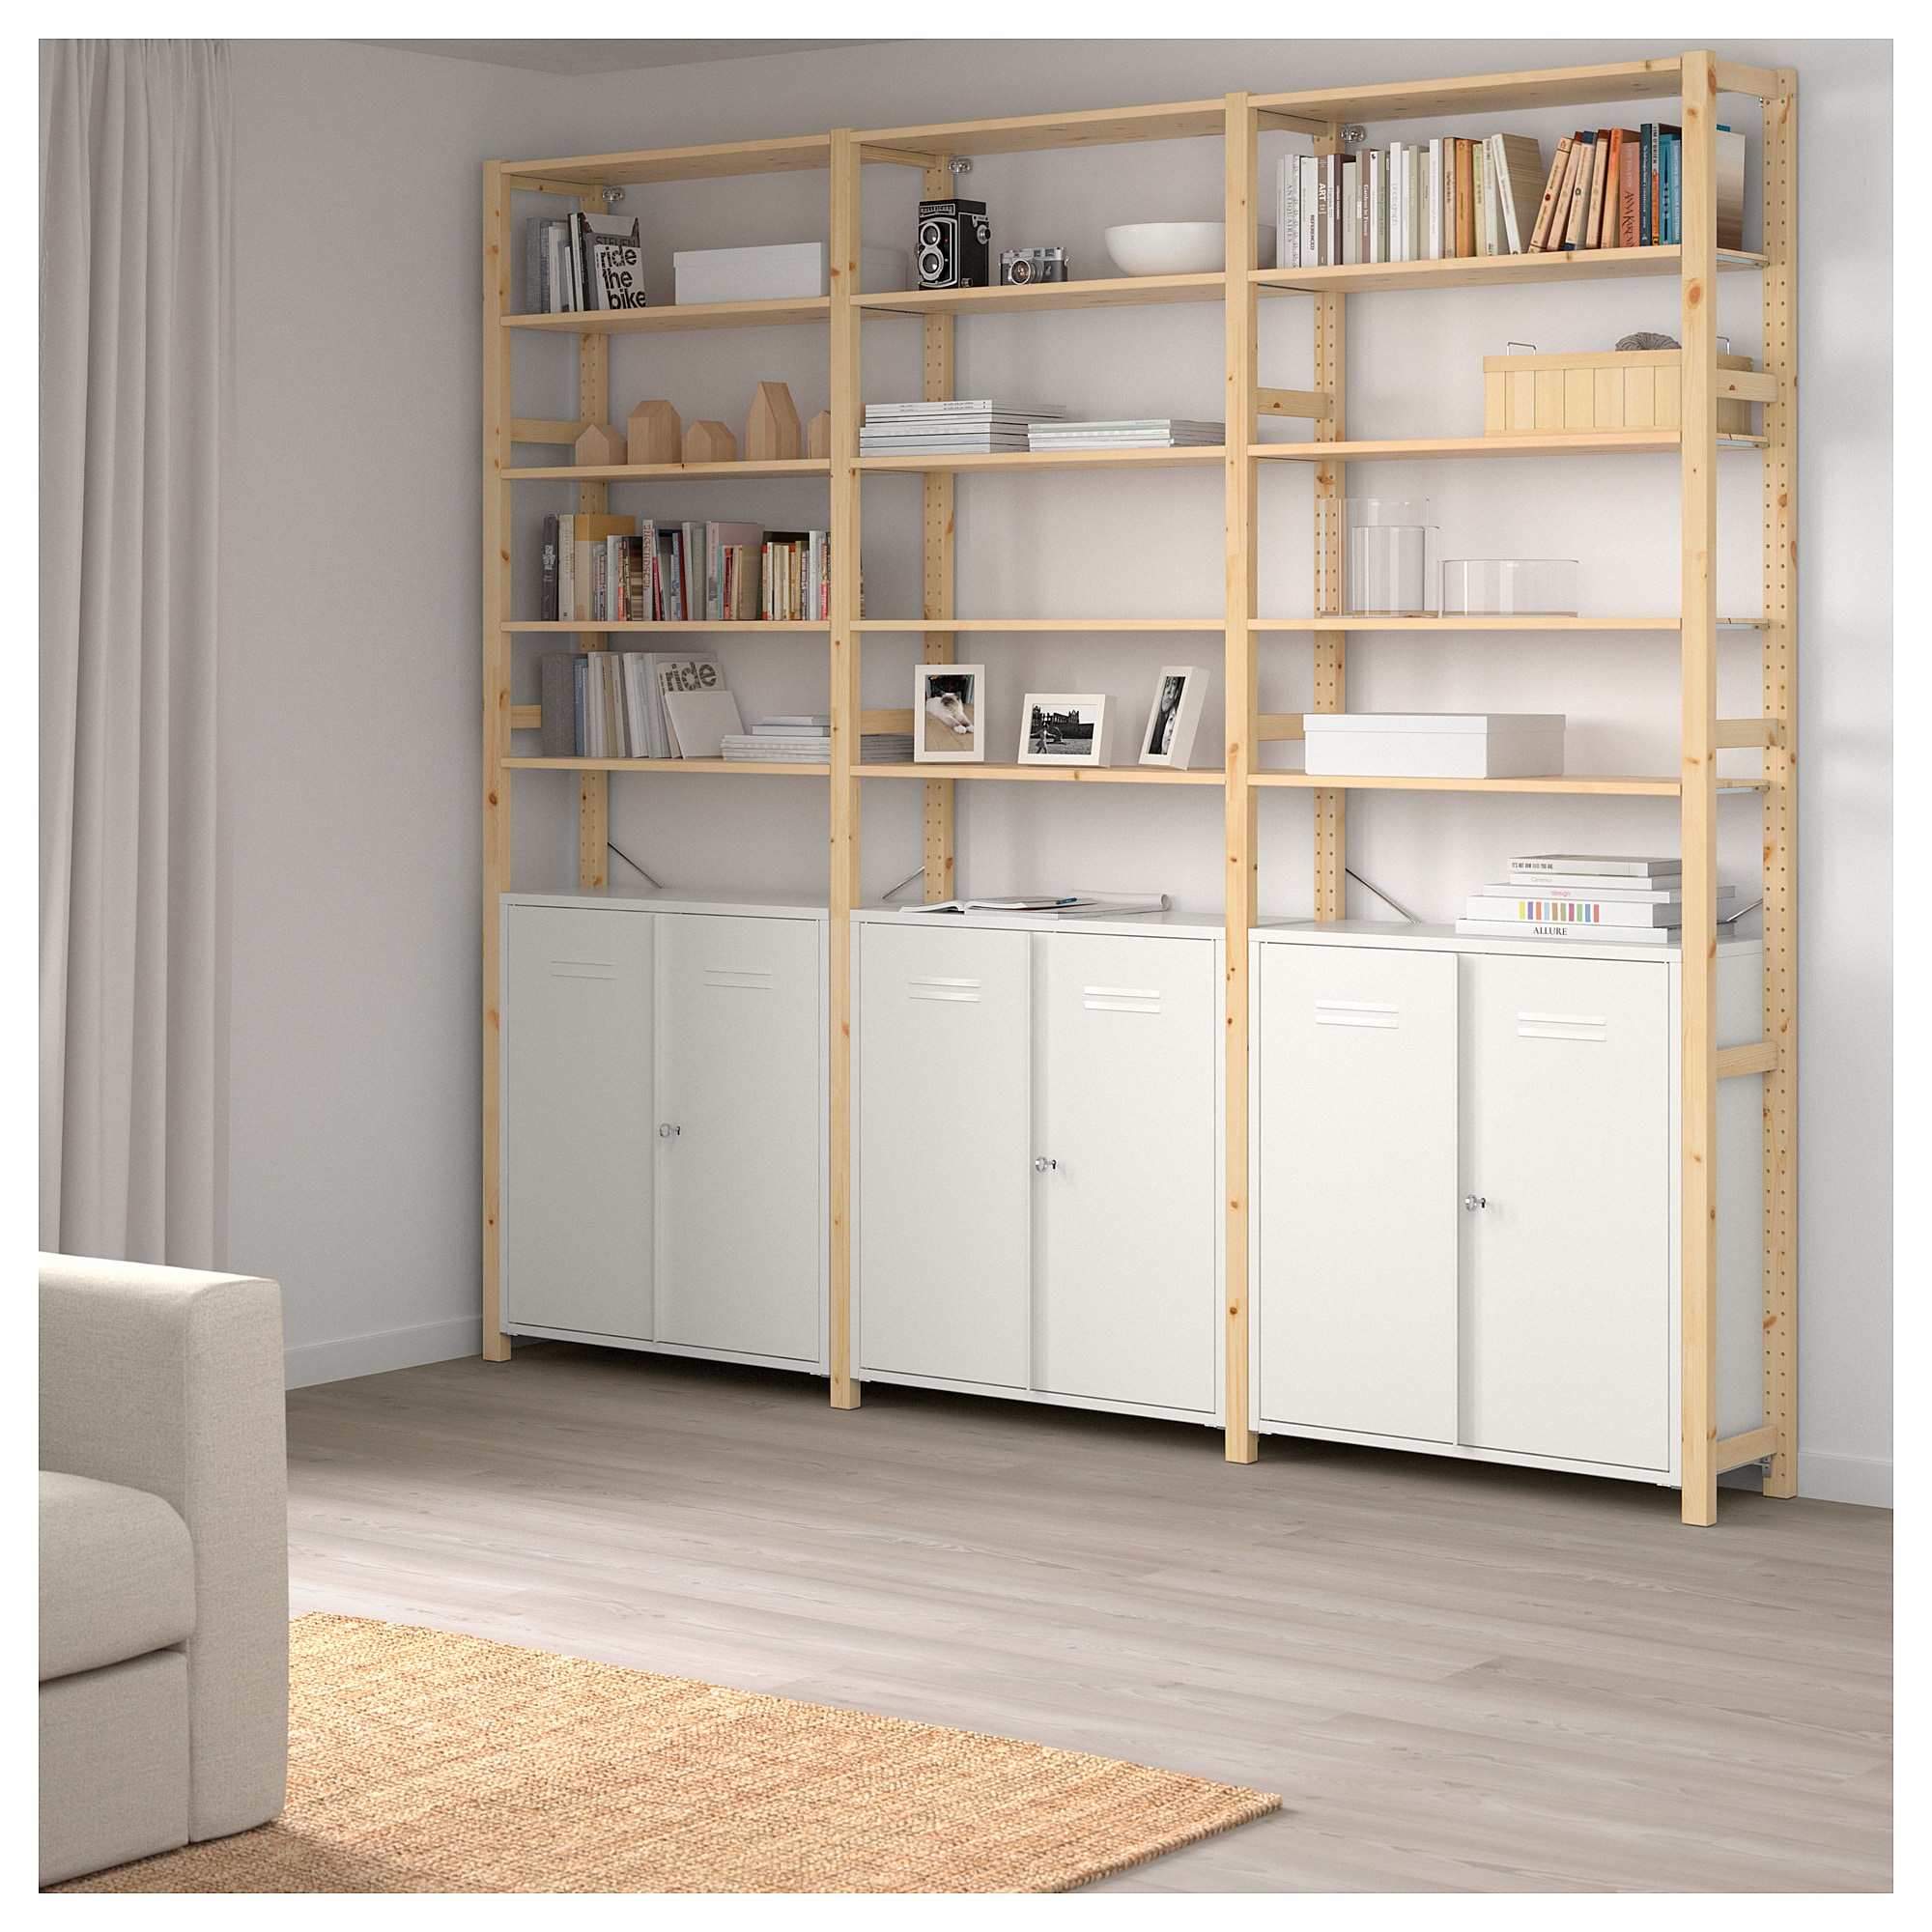 White Pine Cabinets: IVAR 3 Sections/cabinet/shelves